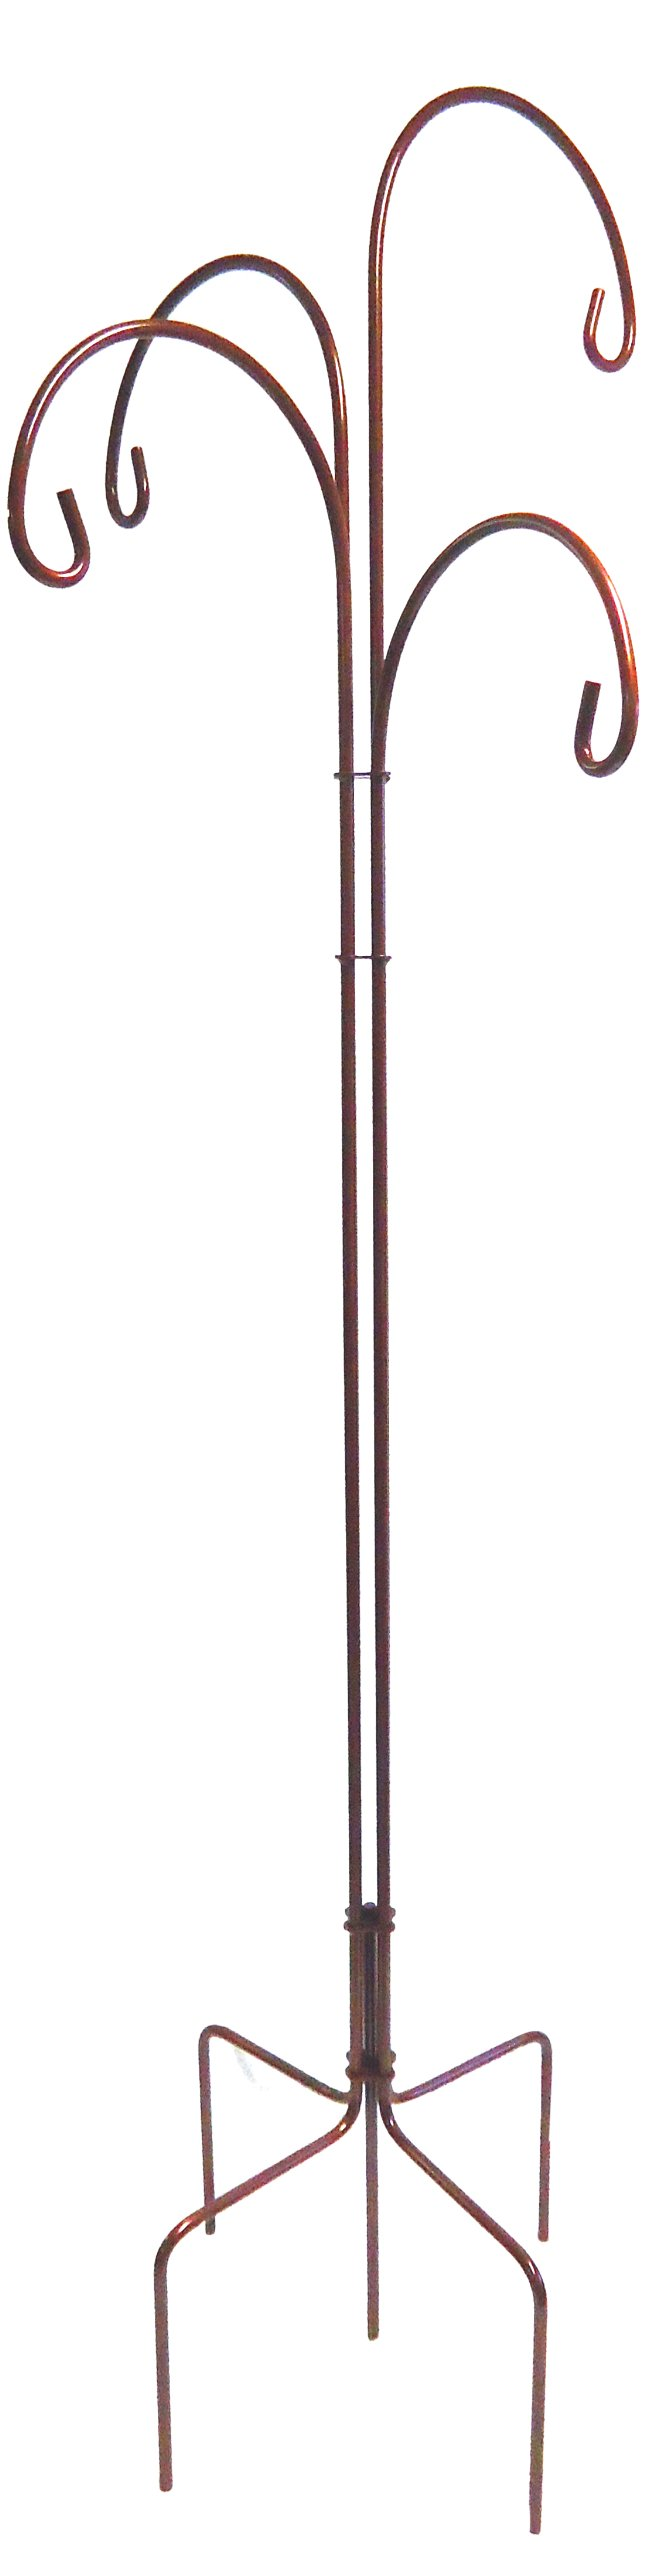 Quicor 68015 Scrolled Quad 4-Offset Shepherd Plant Hook, Brown Pearl